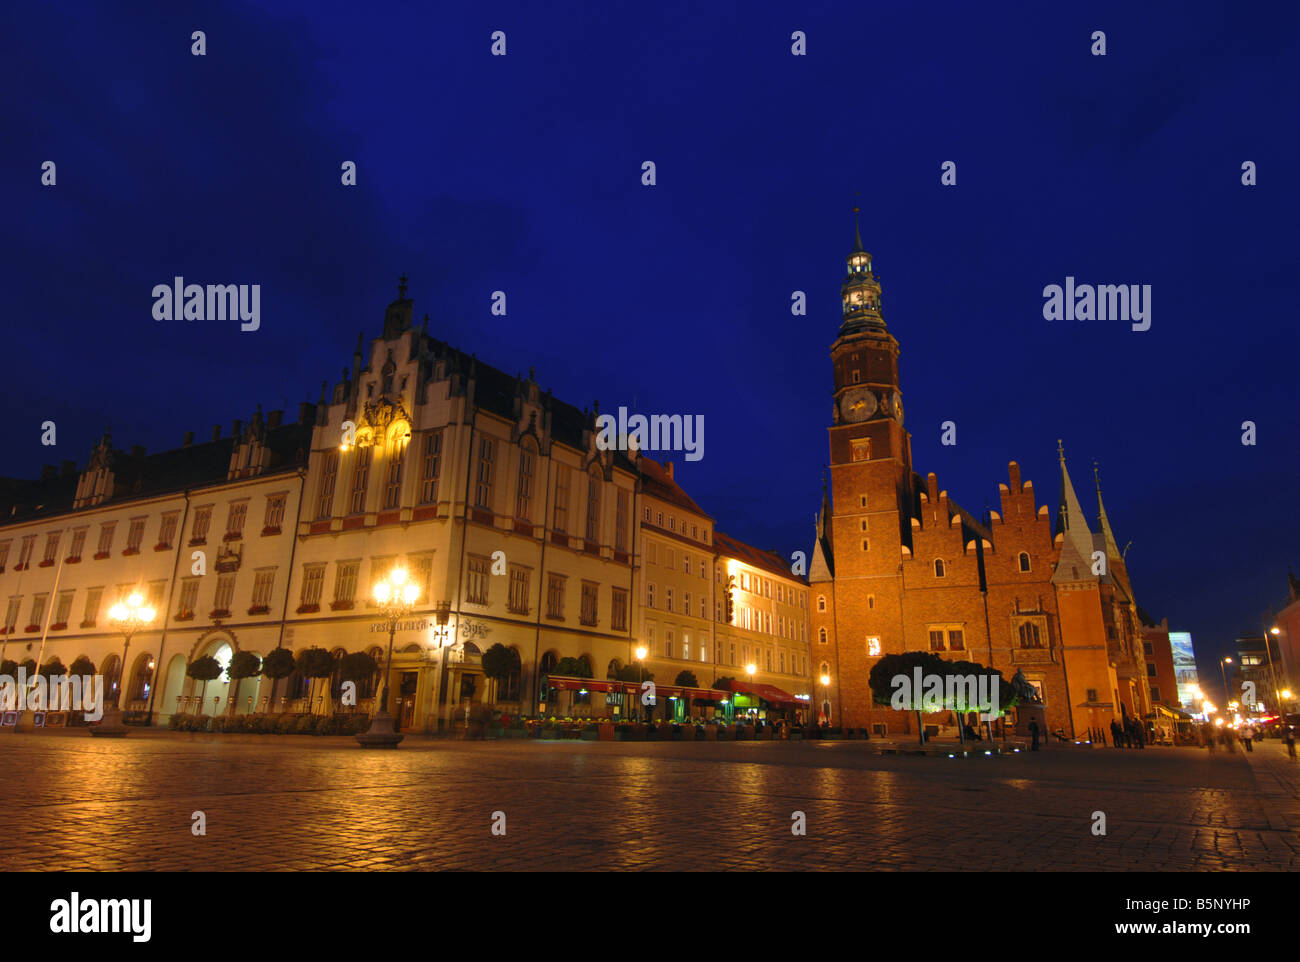 Rynek Square, Wroclaw, Pologne Photo Stock